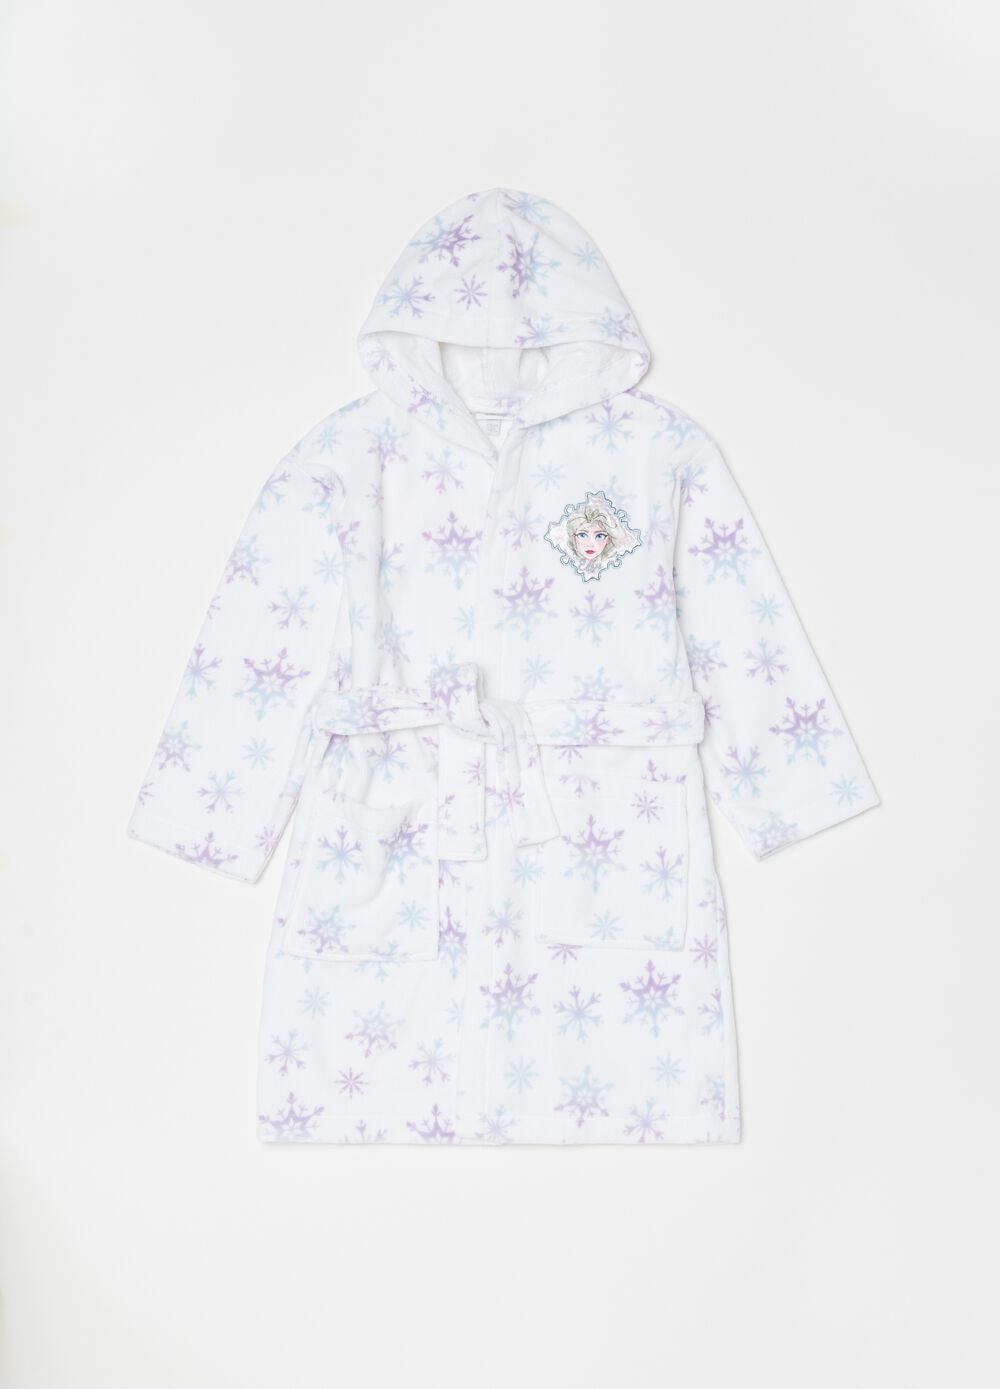 Disney Frozen 2 bathrobe with pockets